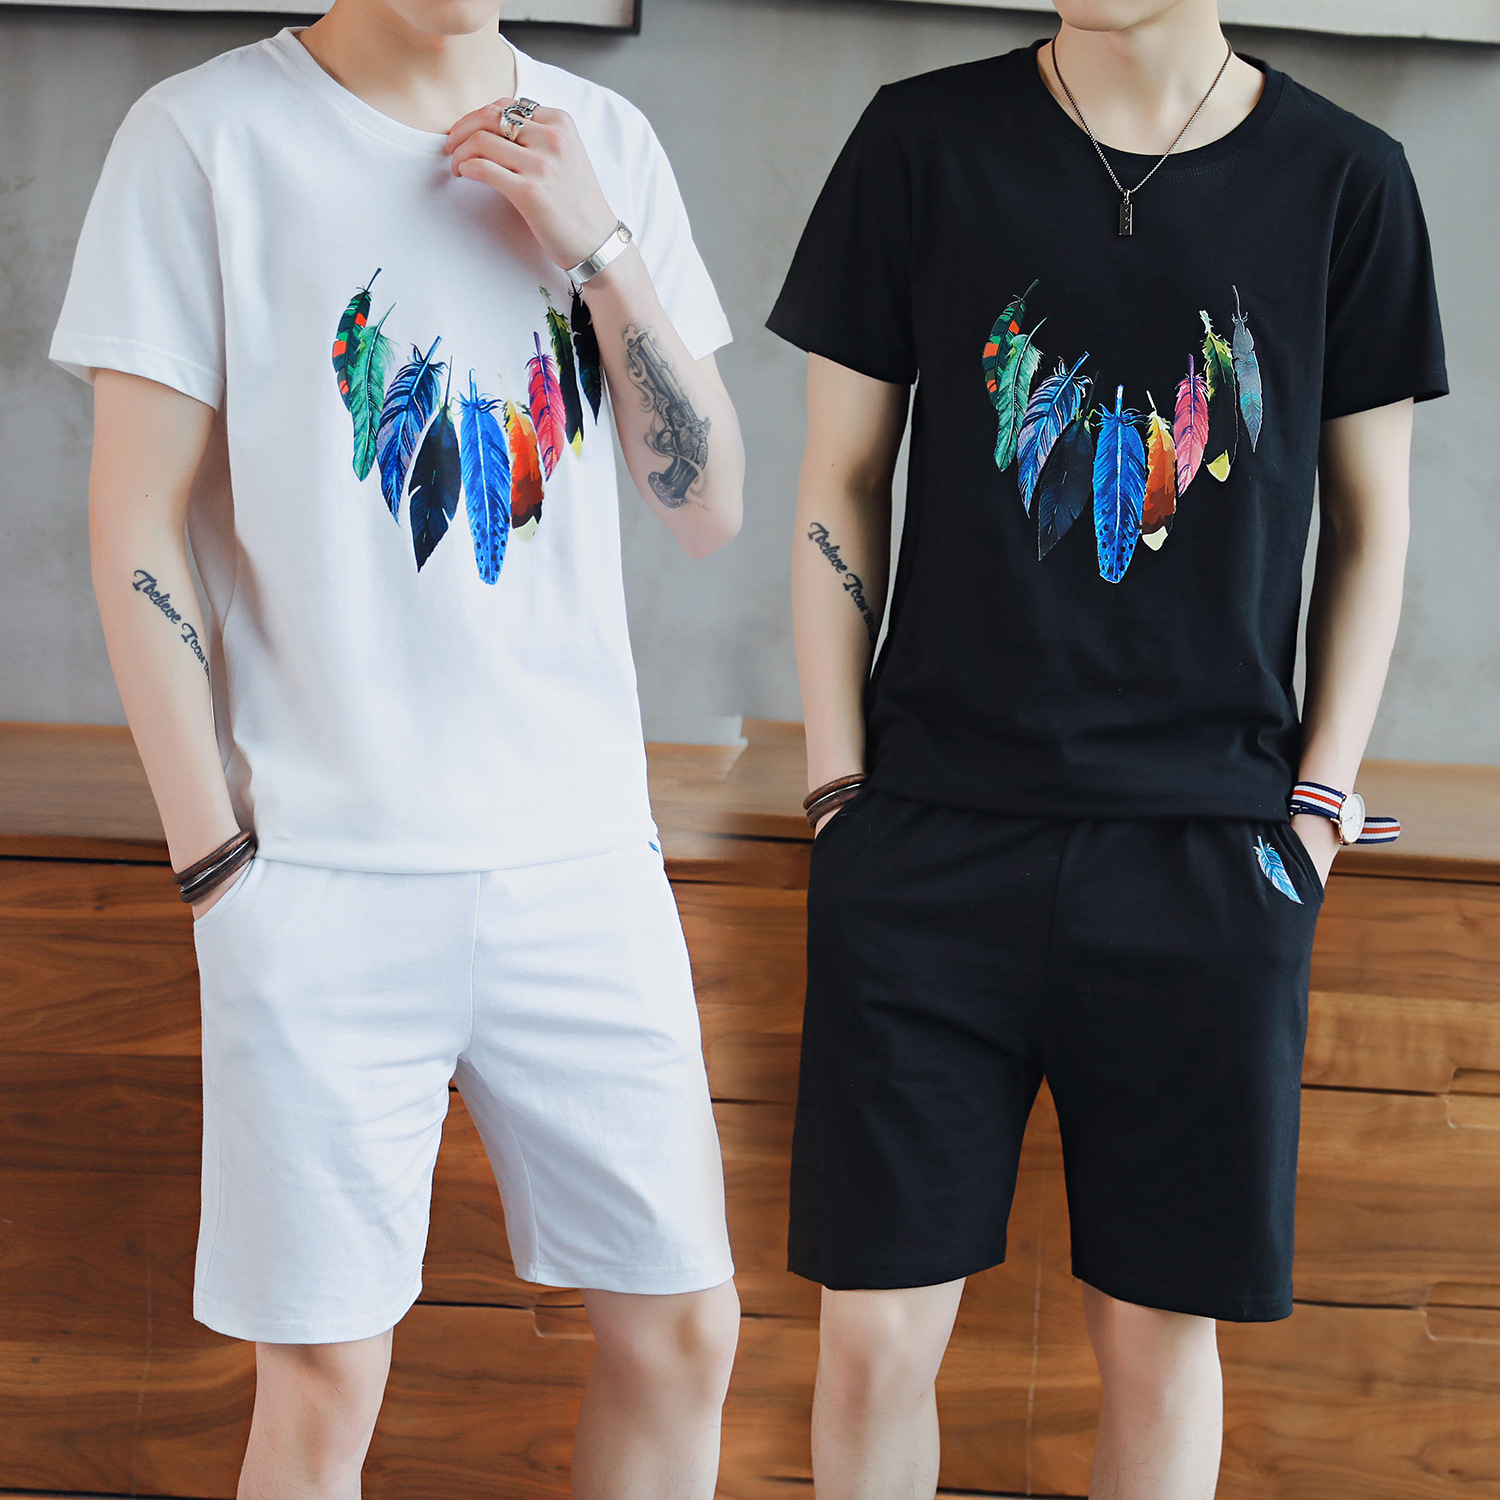 2019 New Style Men's Summer Short-sleeved Set Men's Casual Men's Sports Clothing Running Teenager T-shirt 5 Pants Set